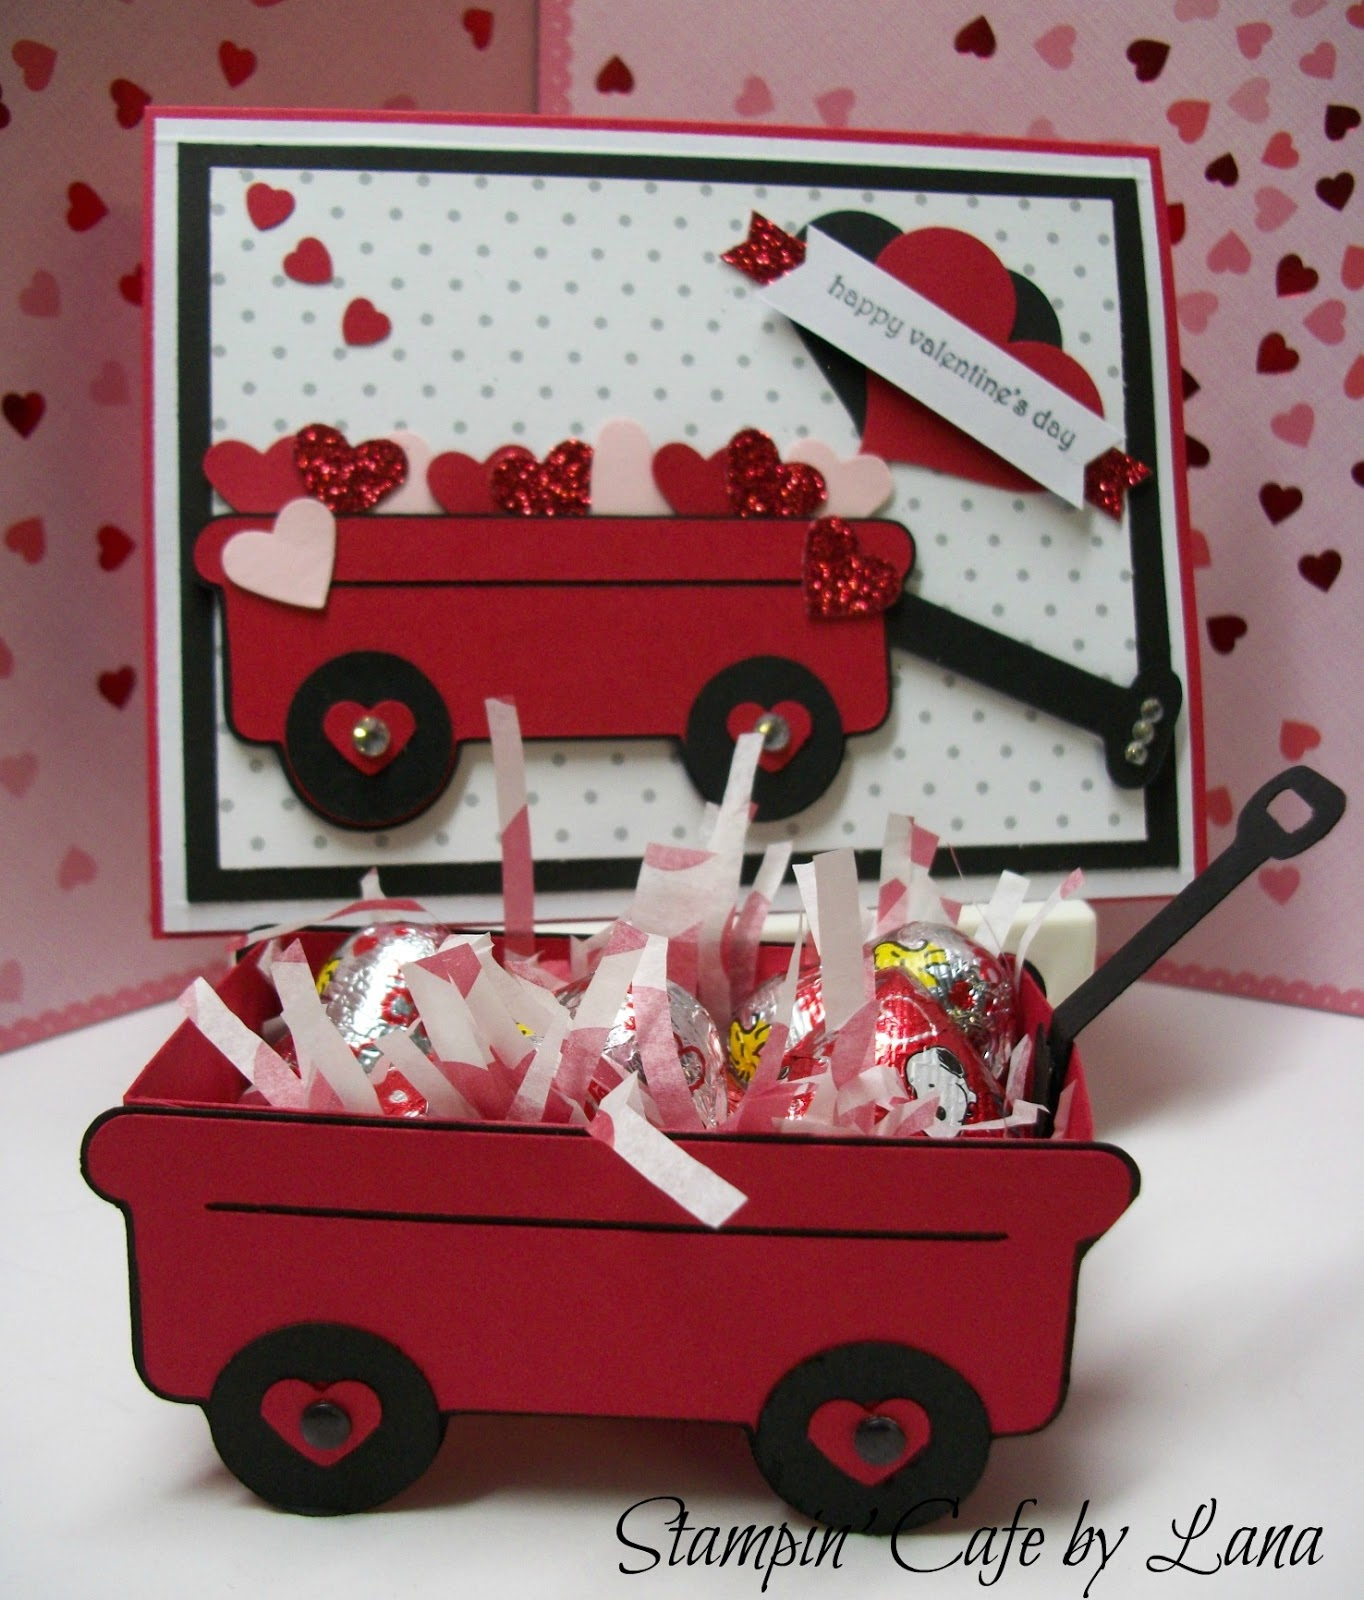 Stampin Cafe by Lana Valentine Wagon and Card – Cricut Valentines Cards